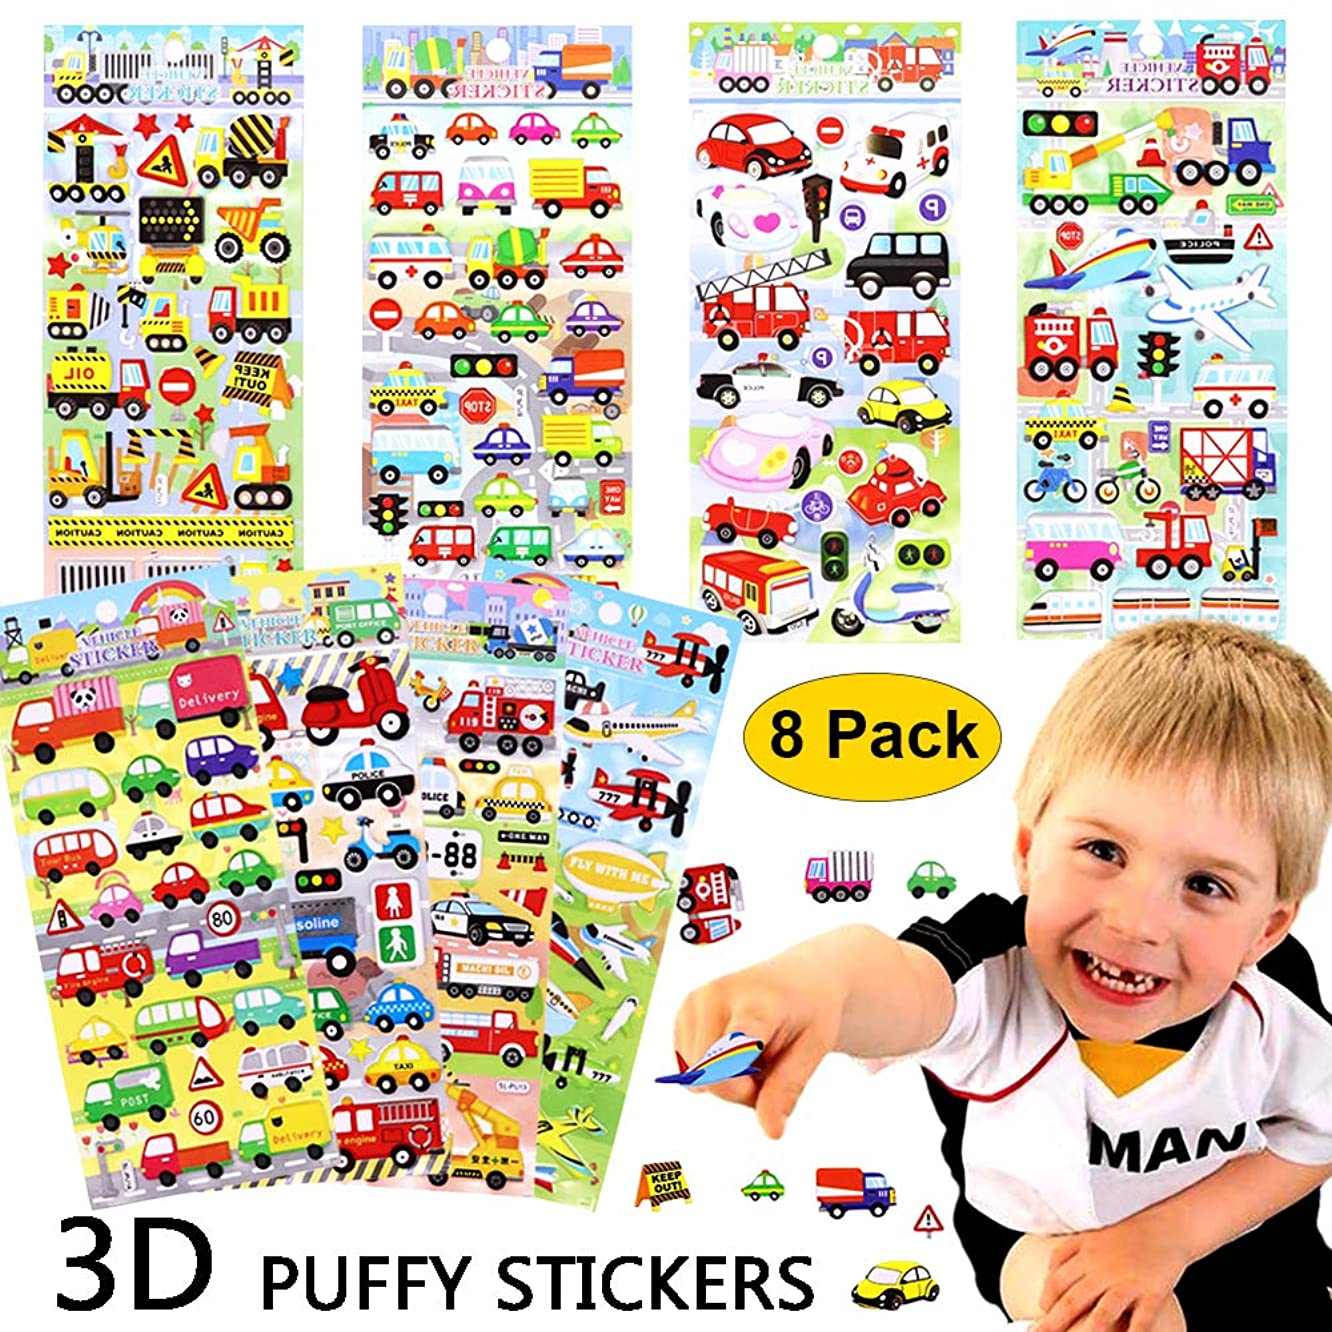 3D Puffy Stickers for Kids 8 Different Sheets Car Stickers Vehicle Taxi Bus Airplane Train Foam Stickers for Scrapbook Toddlers Birthday Party Favors Reward Gift